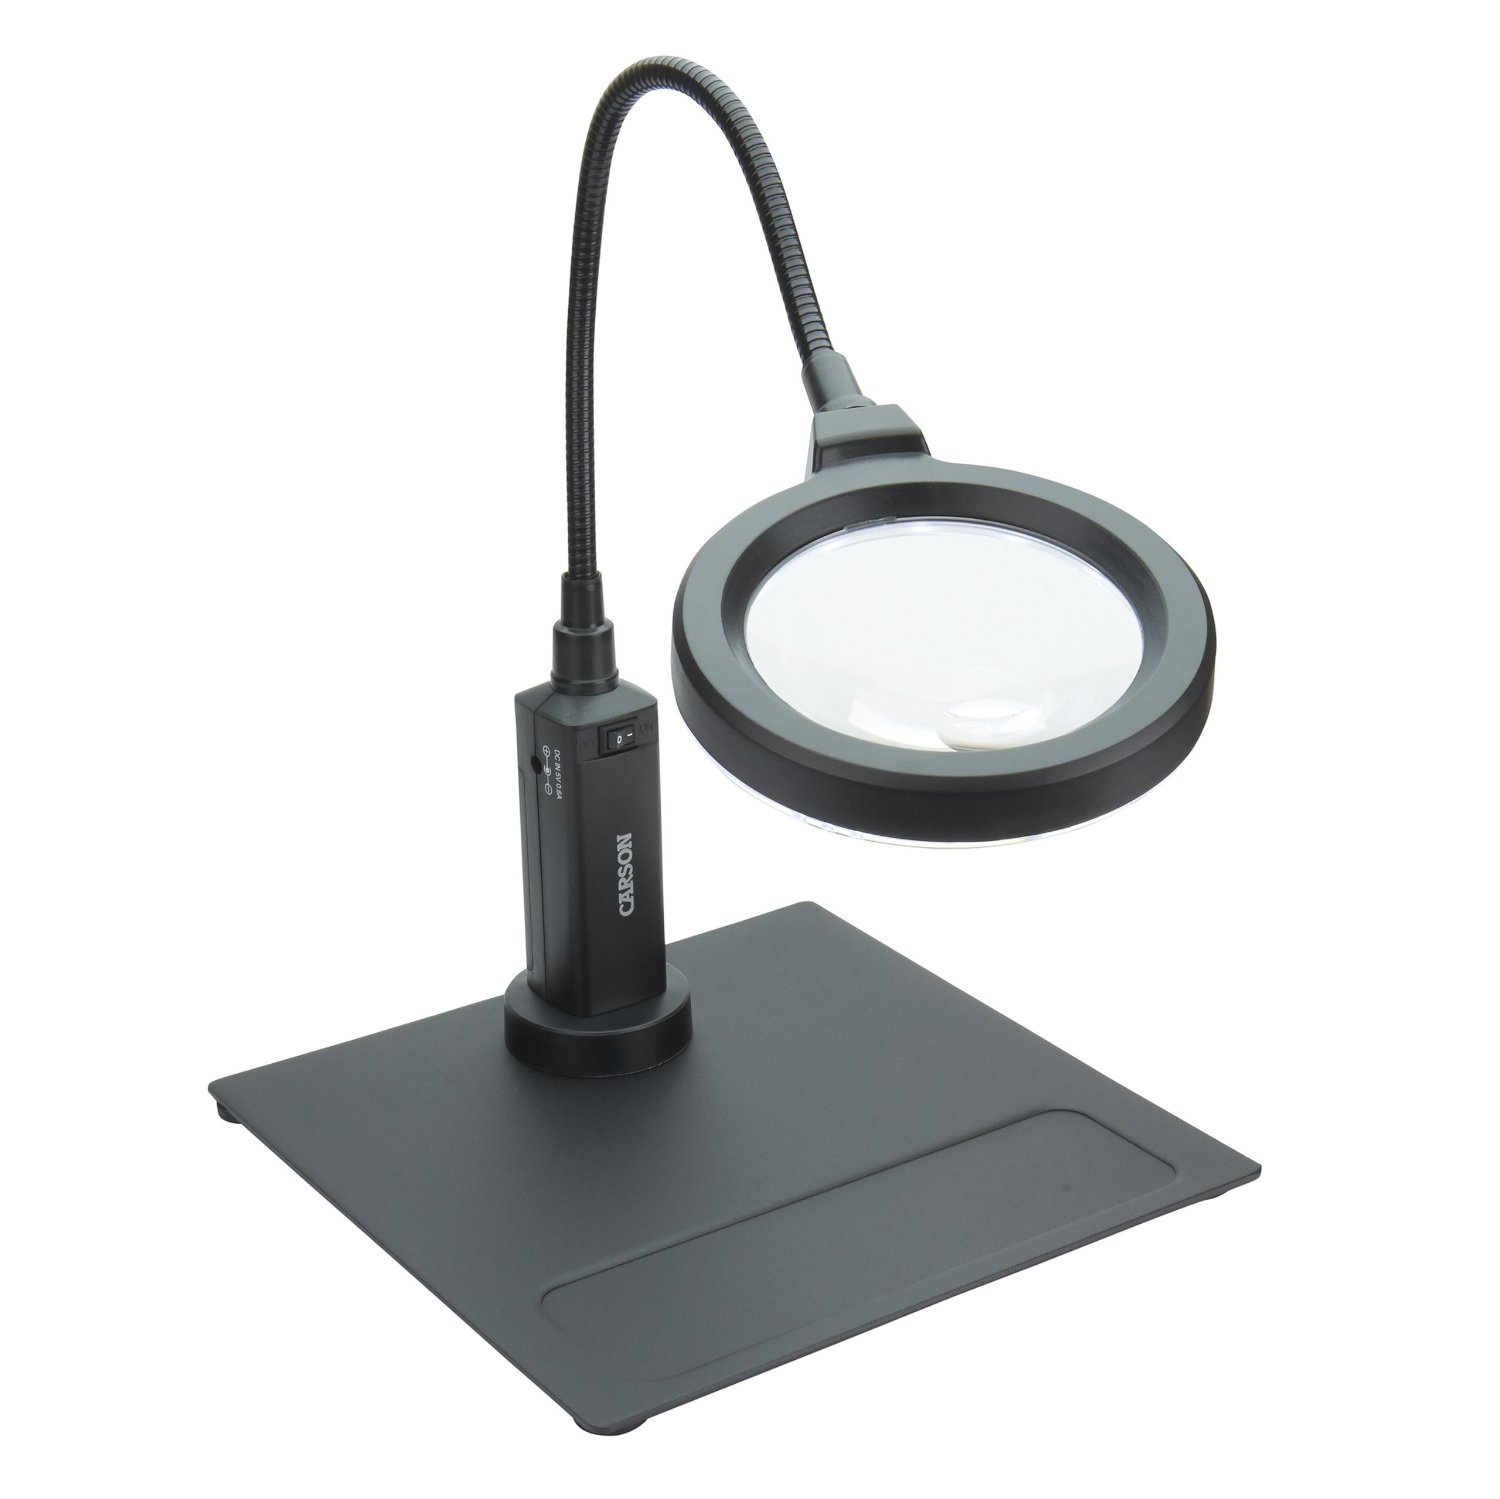 Carson LightFlex Ultra-Bright LED Task Lamp with Adjustable Neck LF-10UK